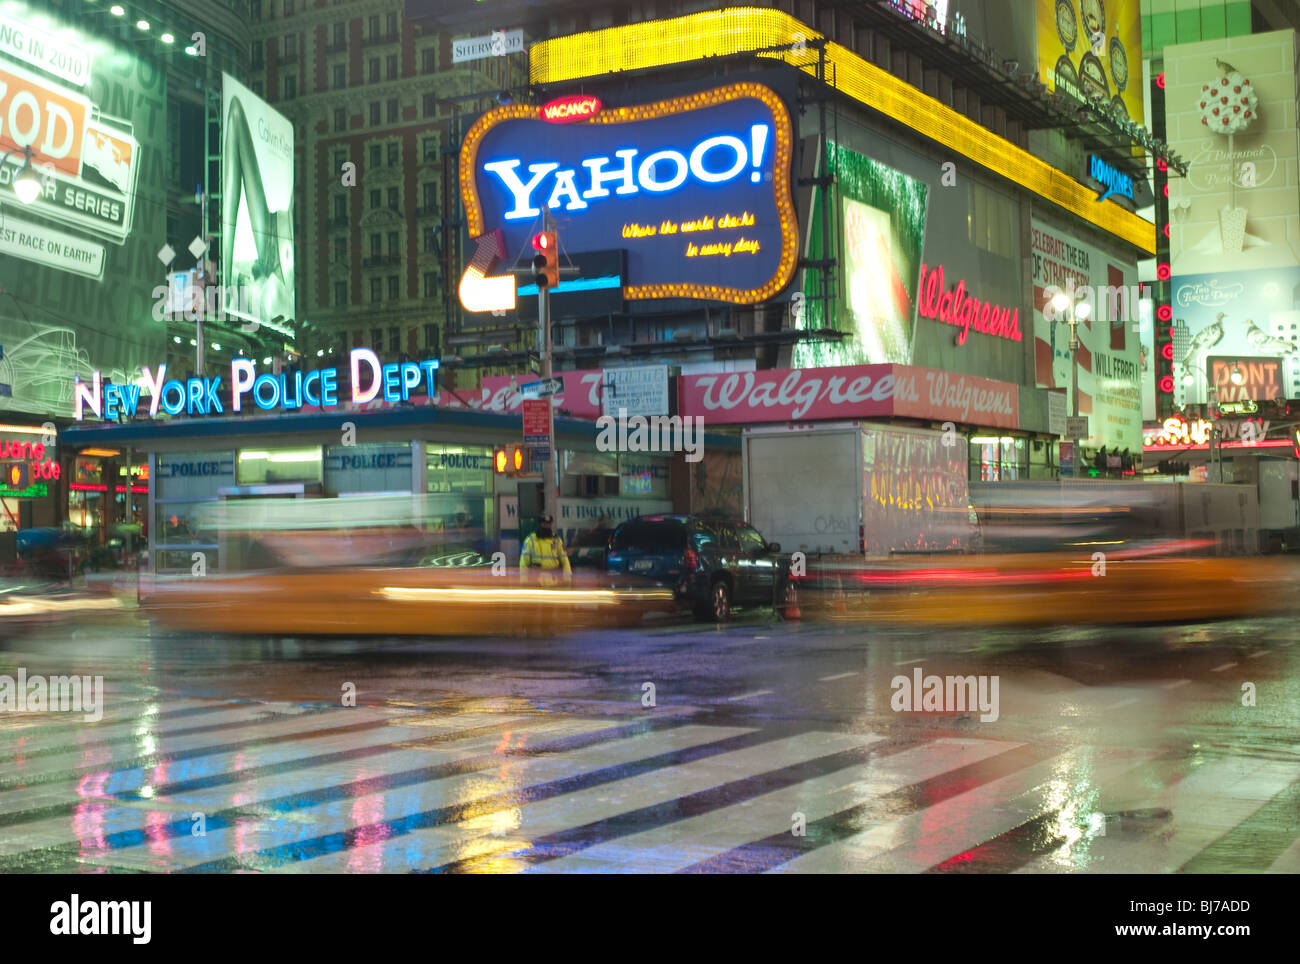 Taxis in motion rushing past the NYPD station in Times Square on a rainy evening in New York City. - Stock Image